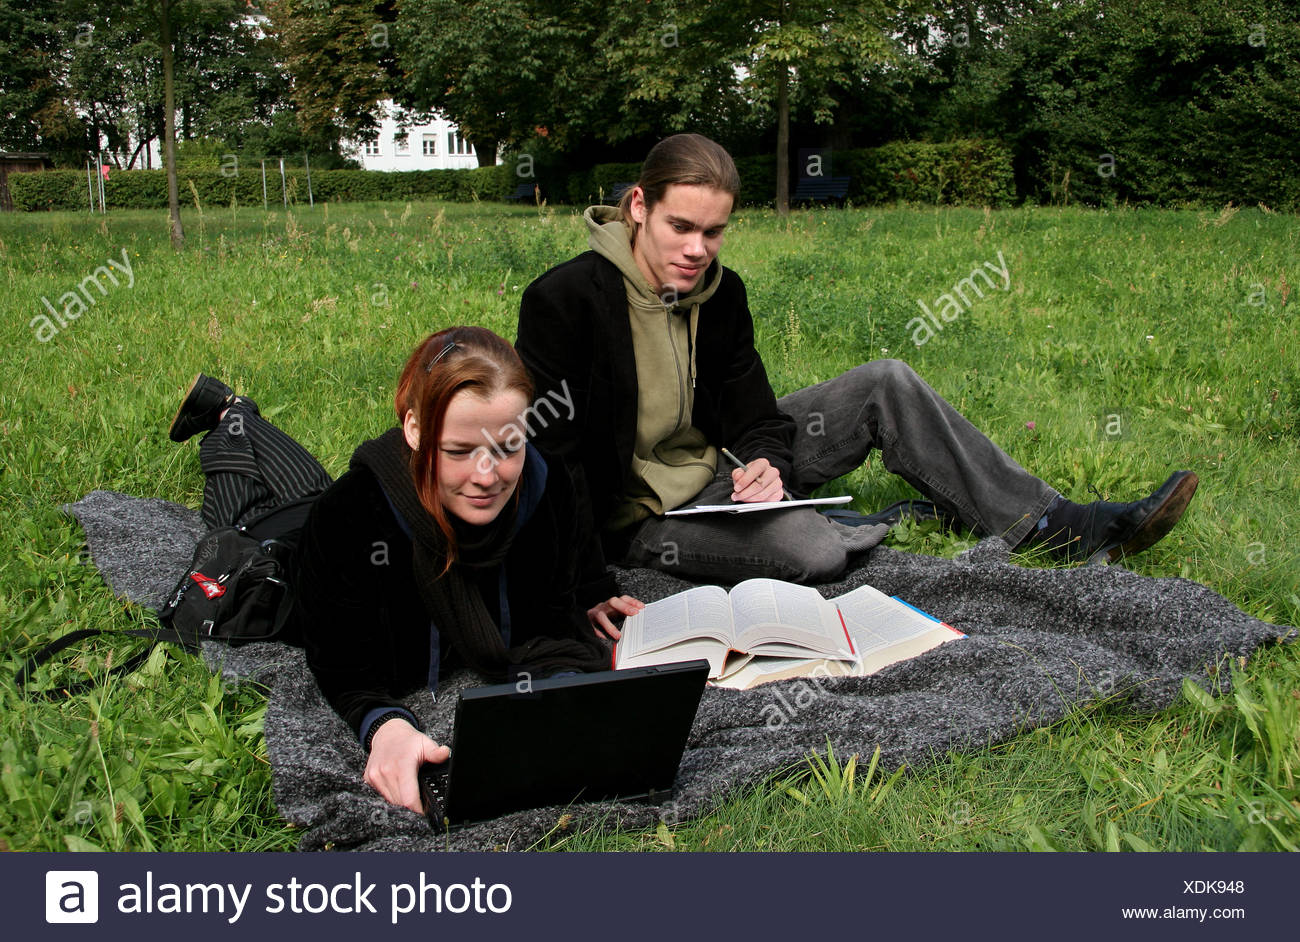 students learn in the park - Stock Image